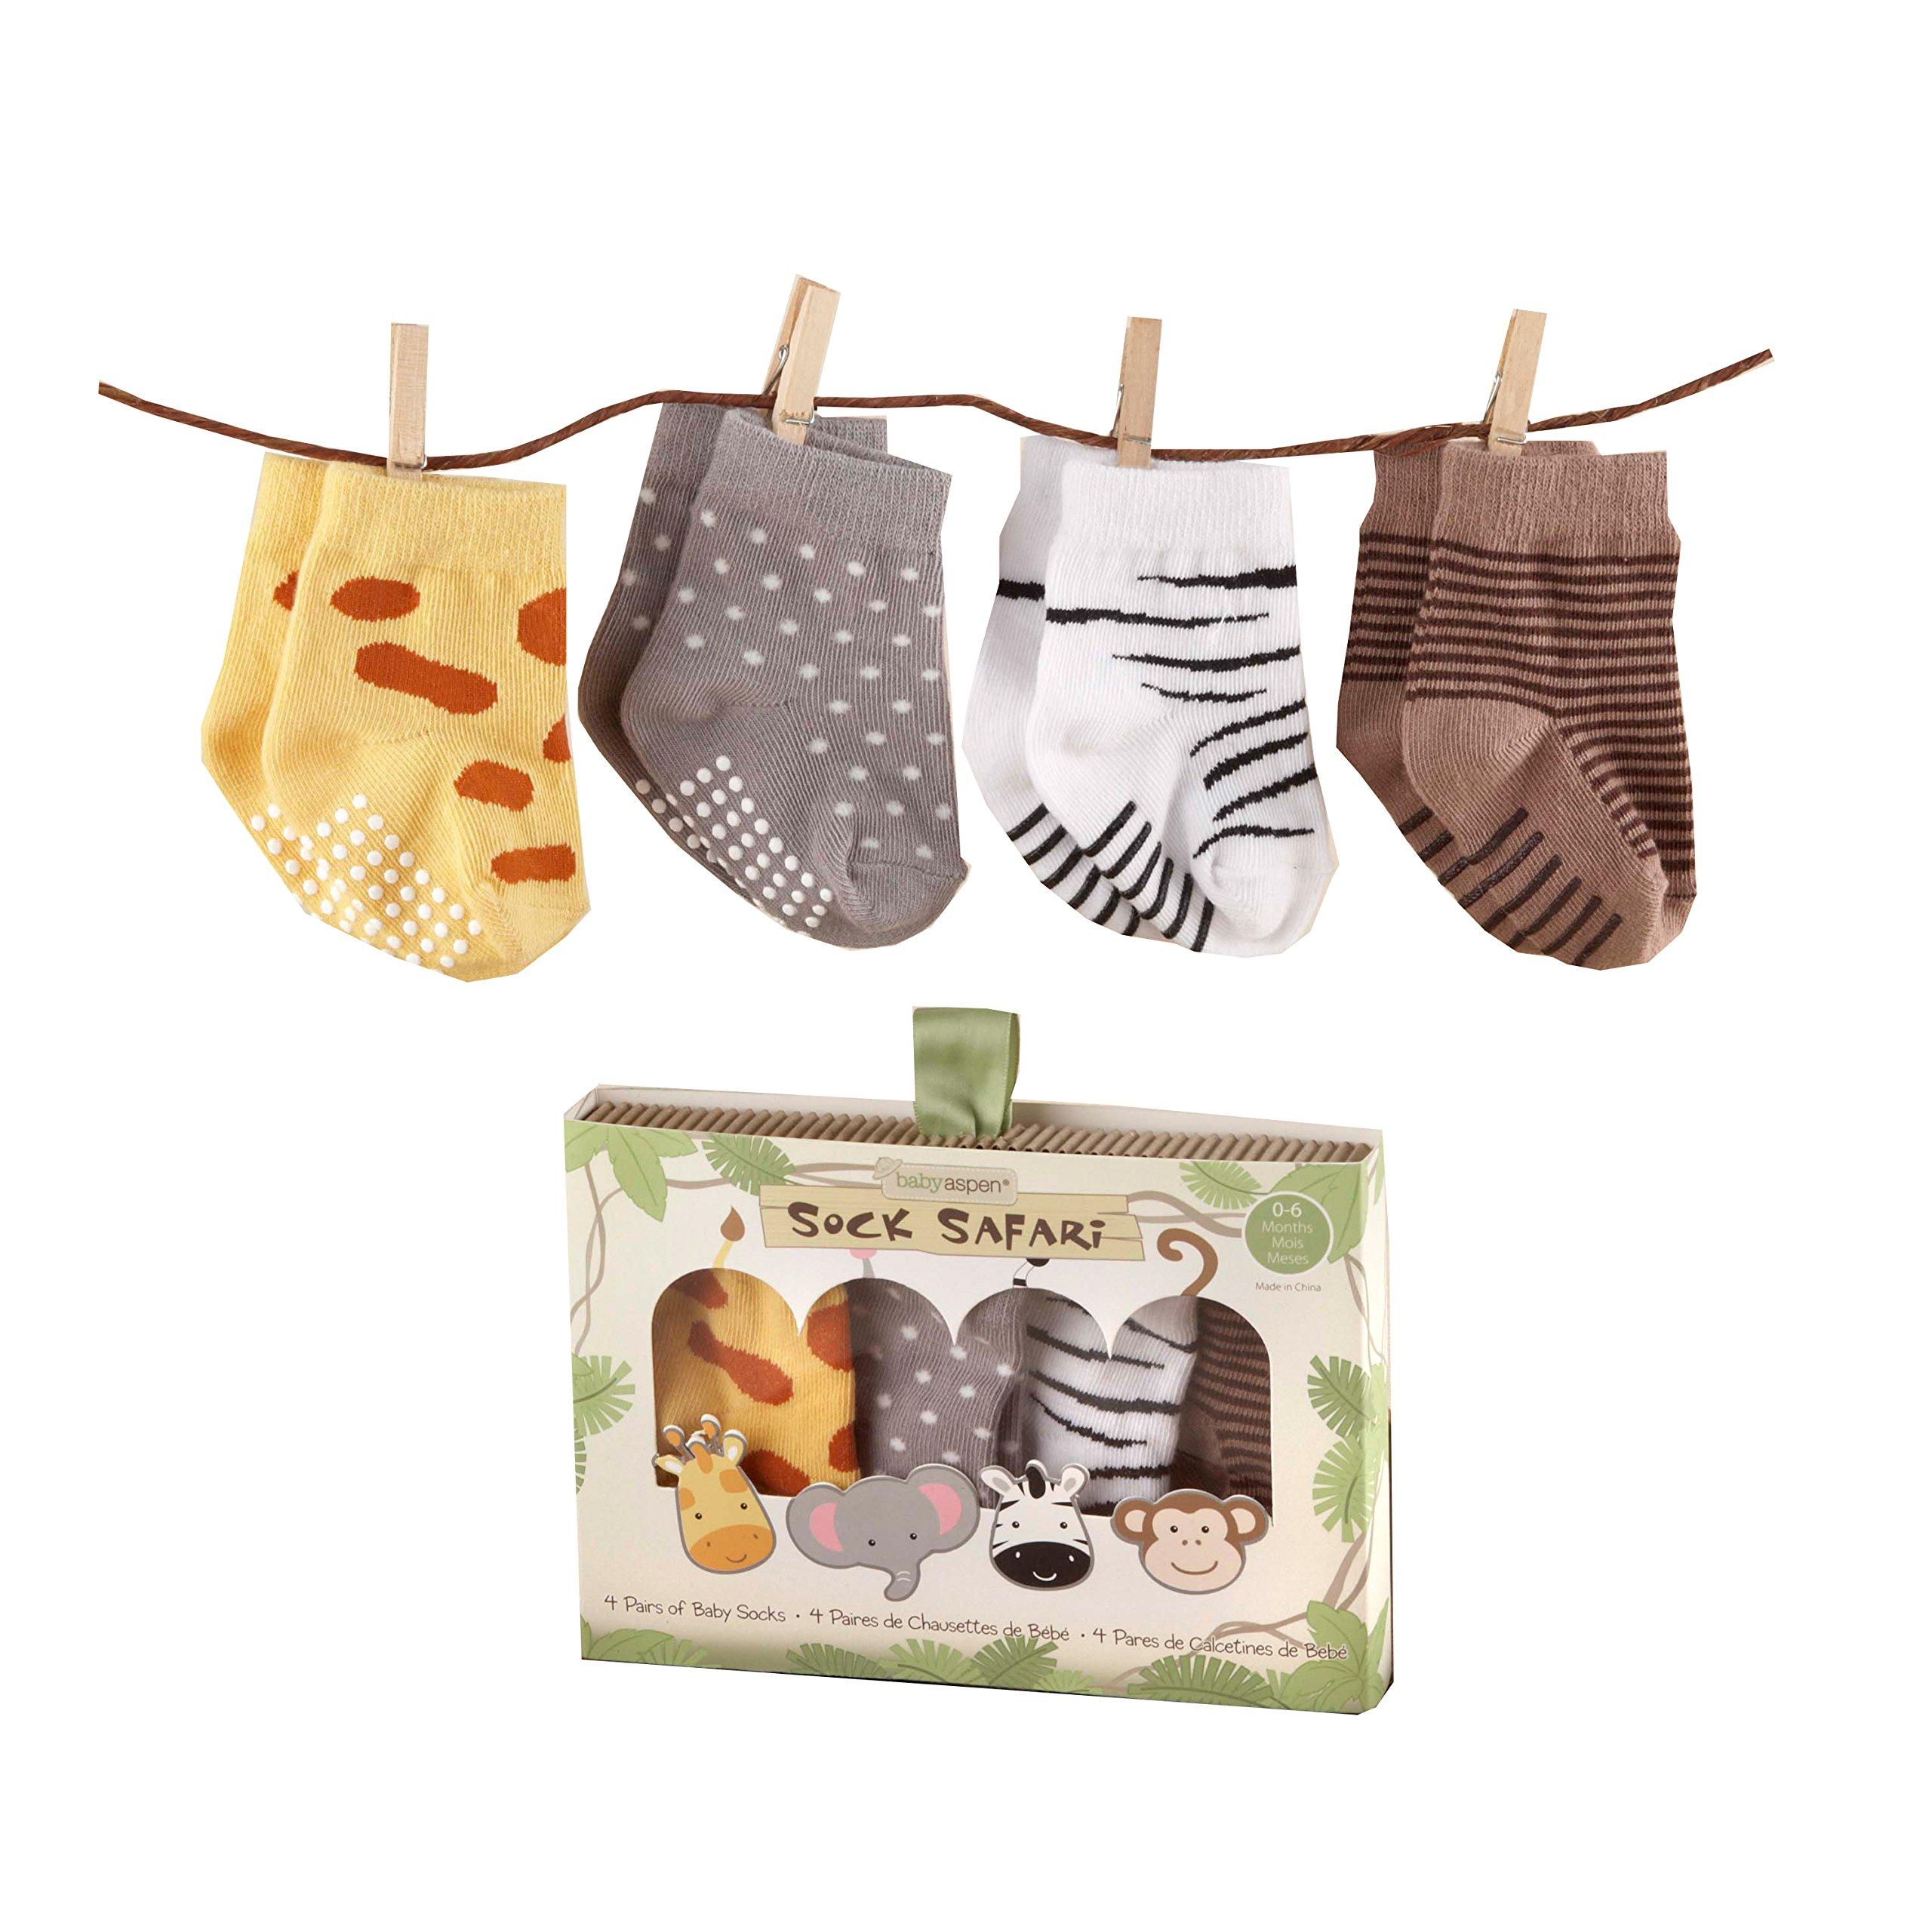 Baby Aspen, Sock Safari Four-Pair Animal-Themed Socks Set, 0-